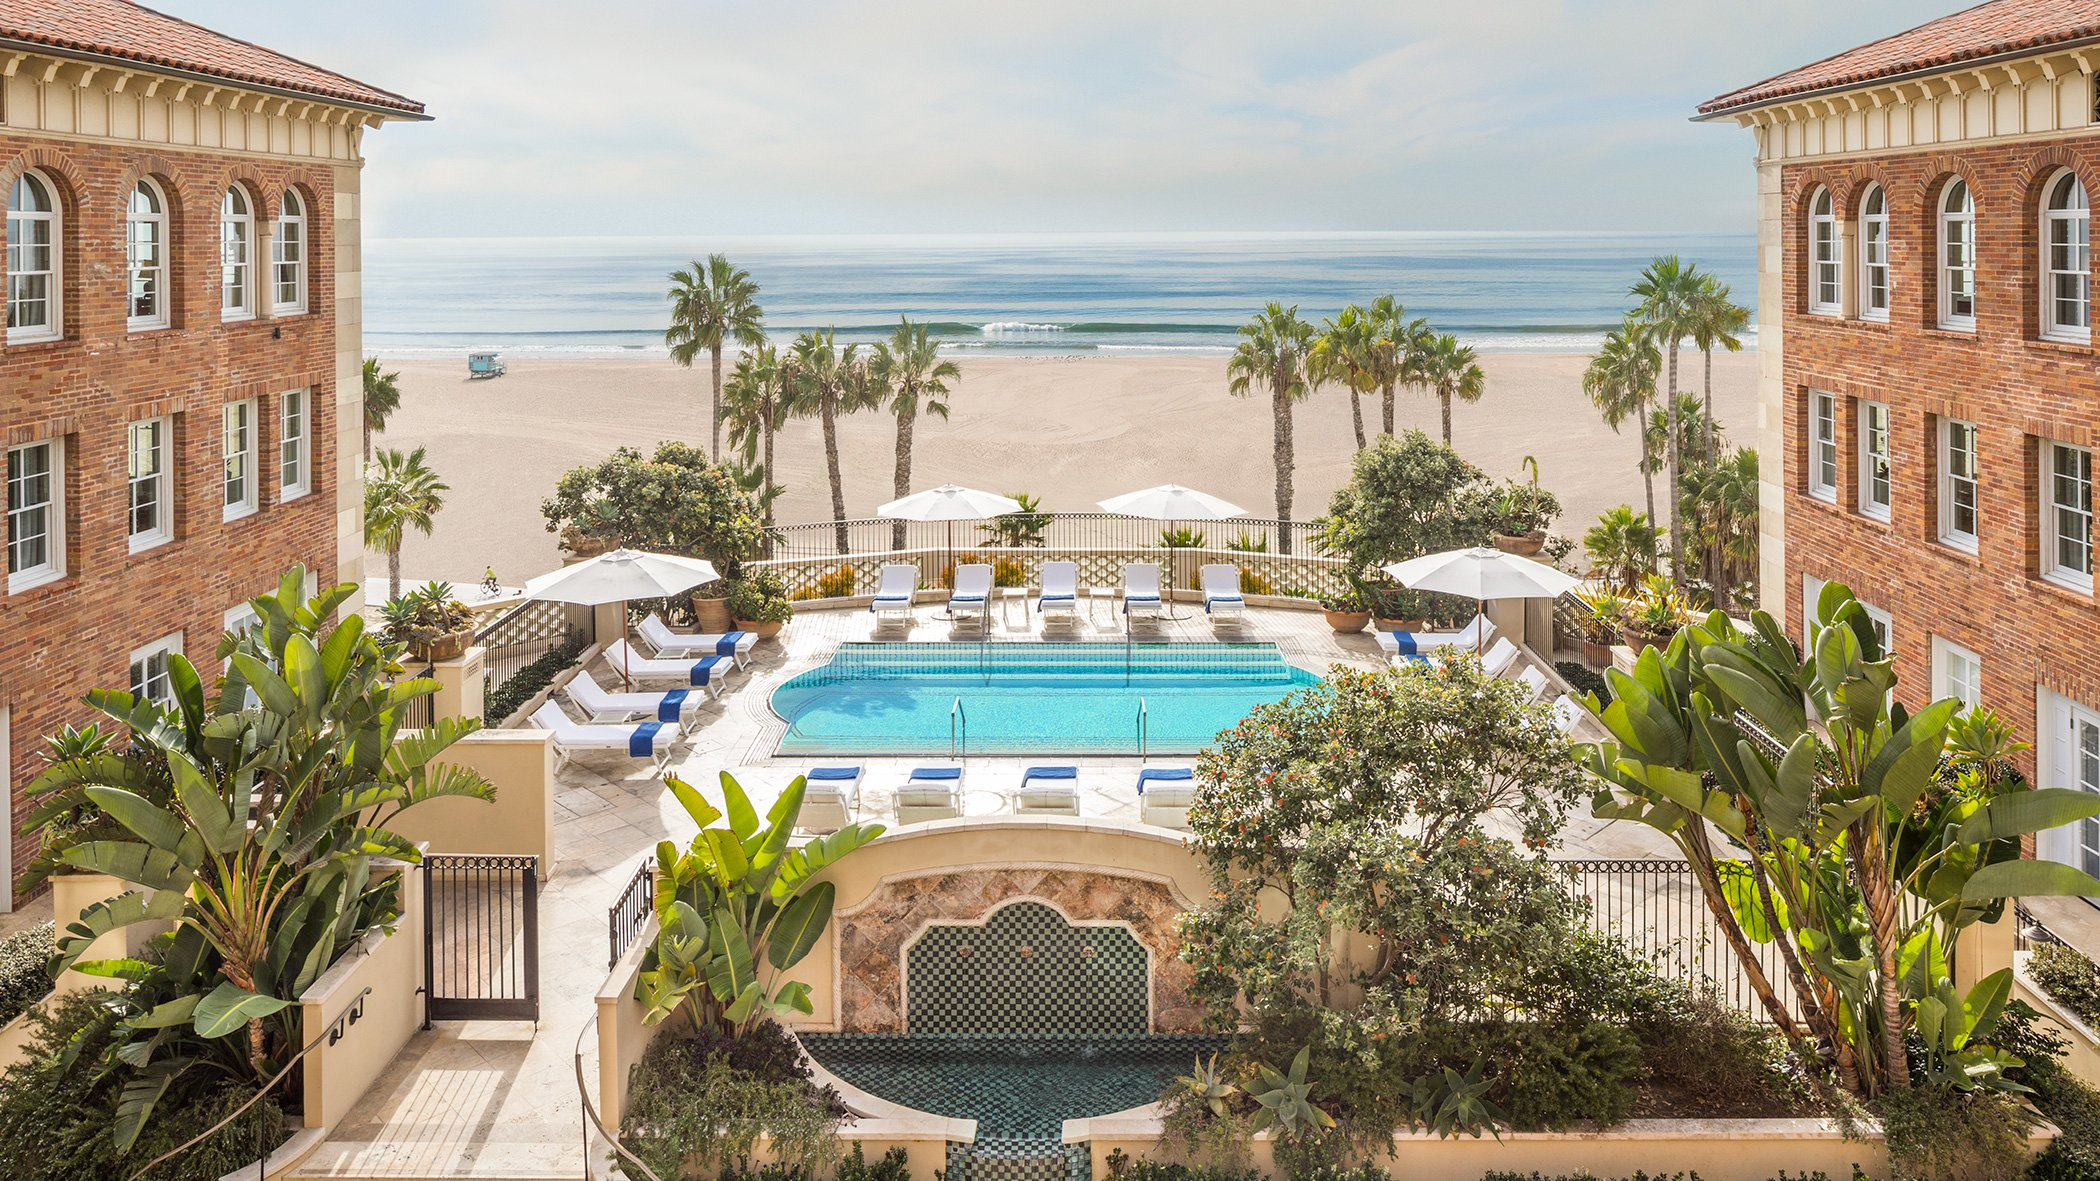 View over the pool to the beach at Hotel Casa Del Mar in Santa Monica.